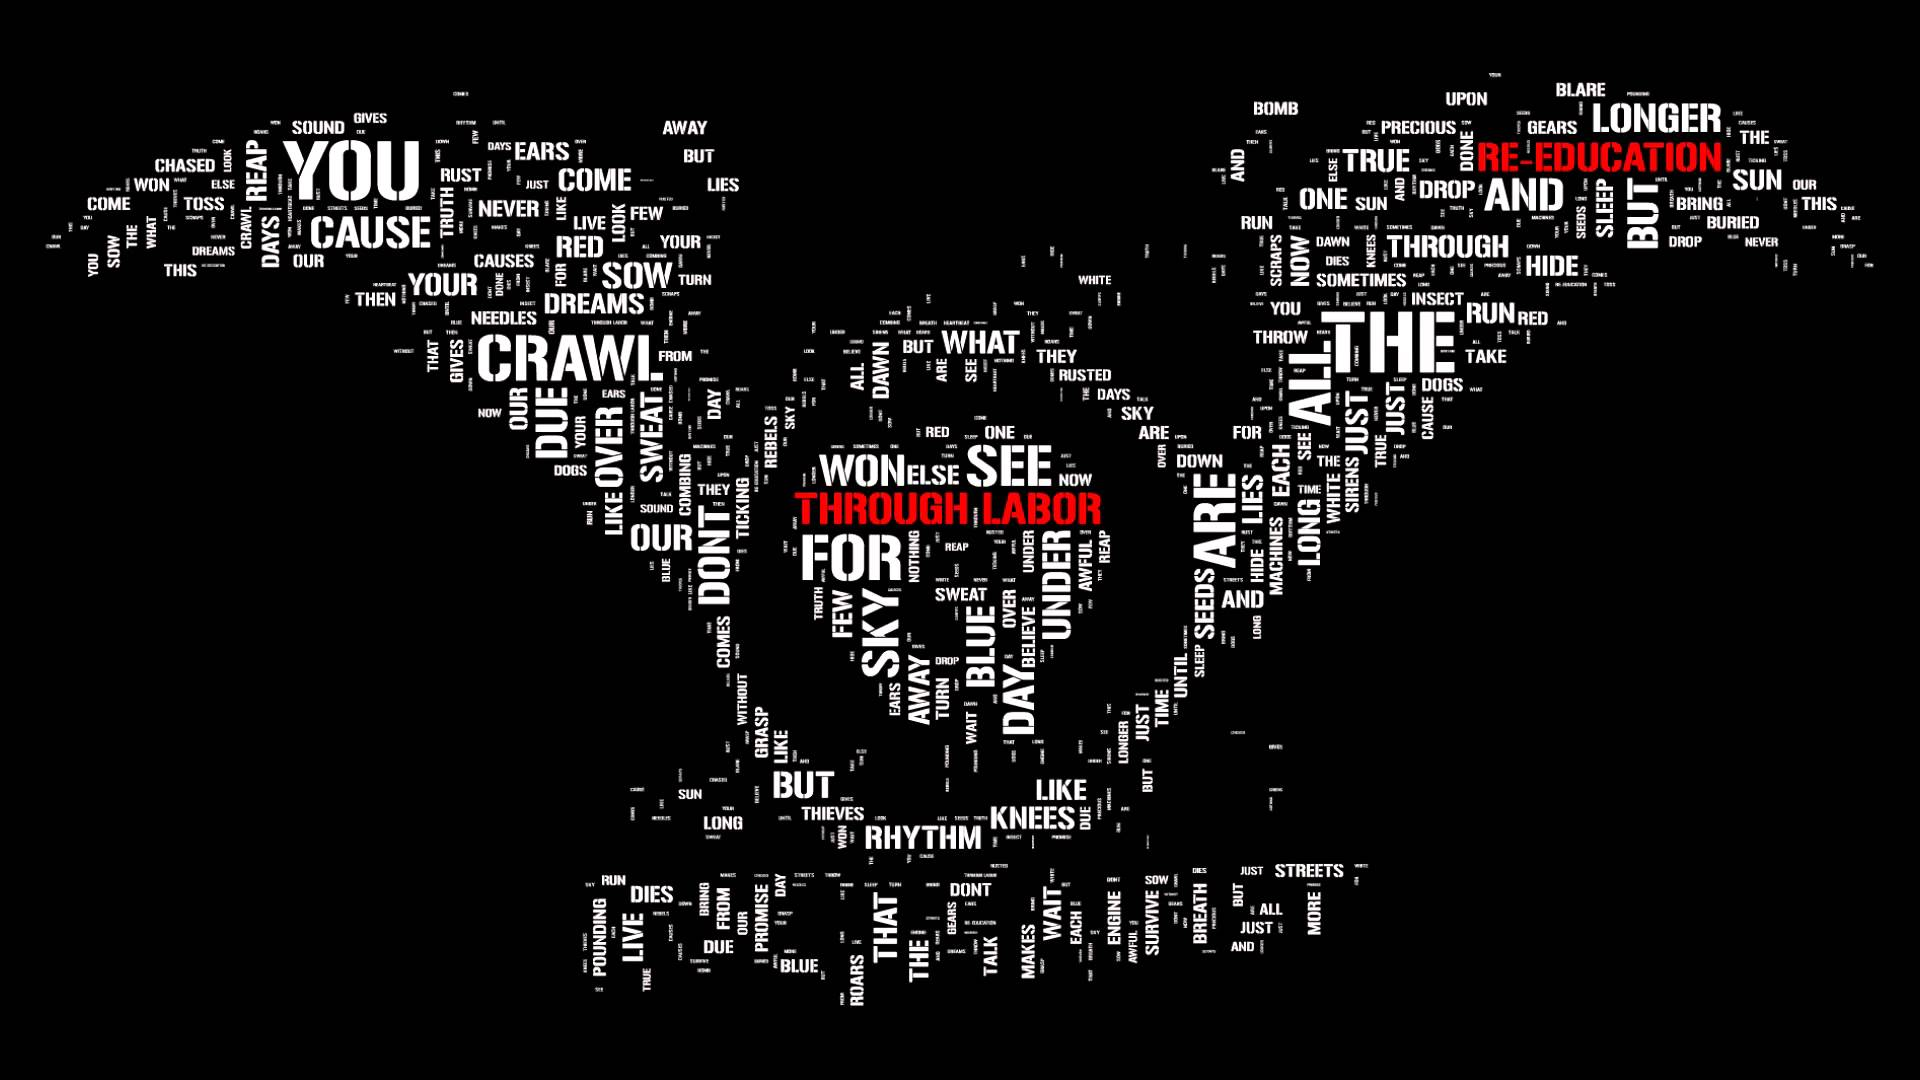 Rise Against HD Wallpapers | 7wallpapers.net